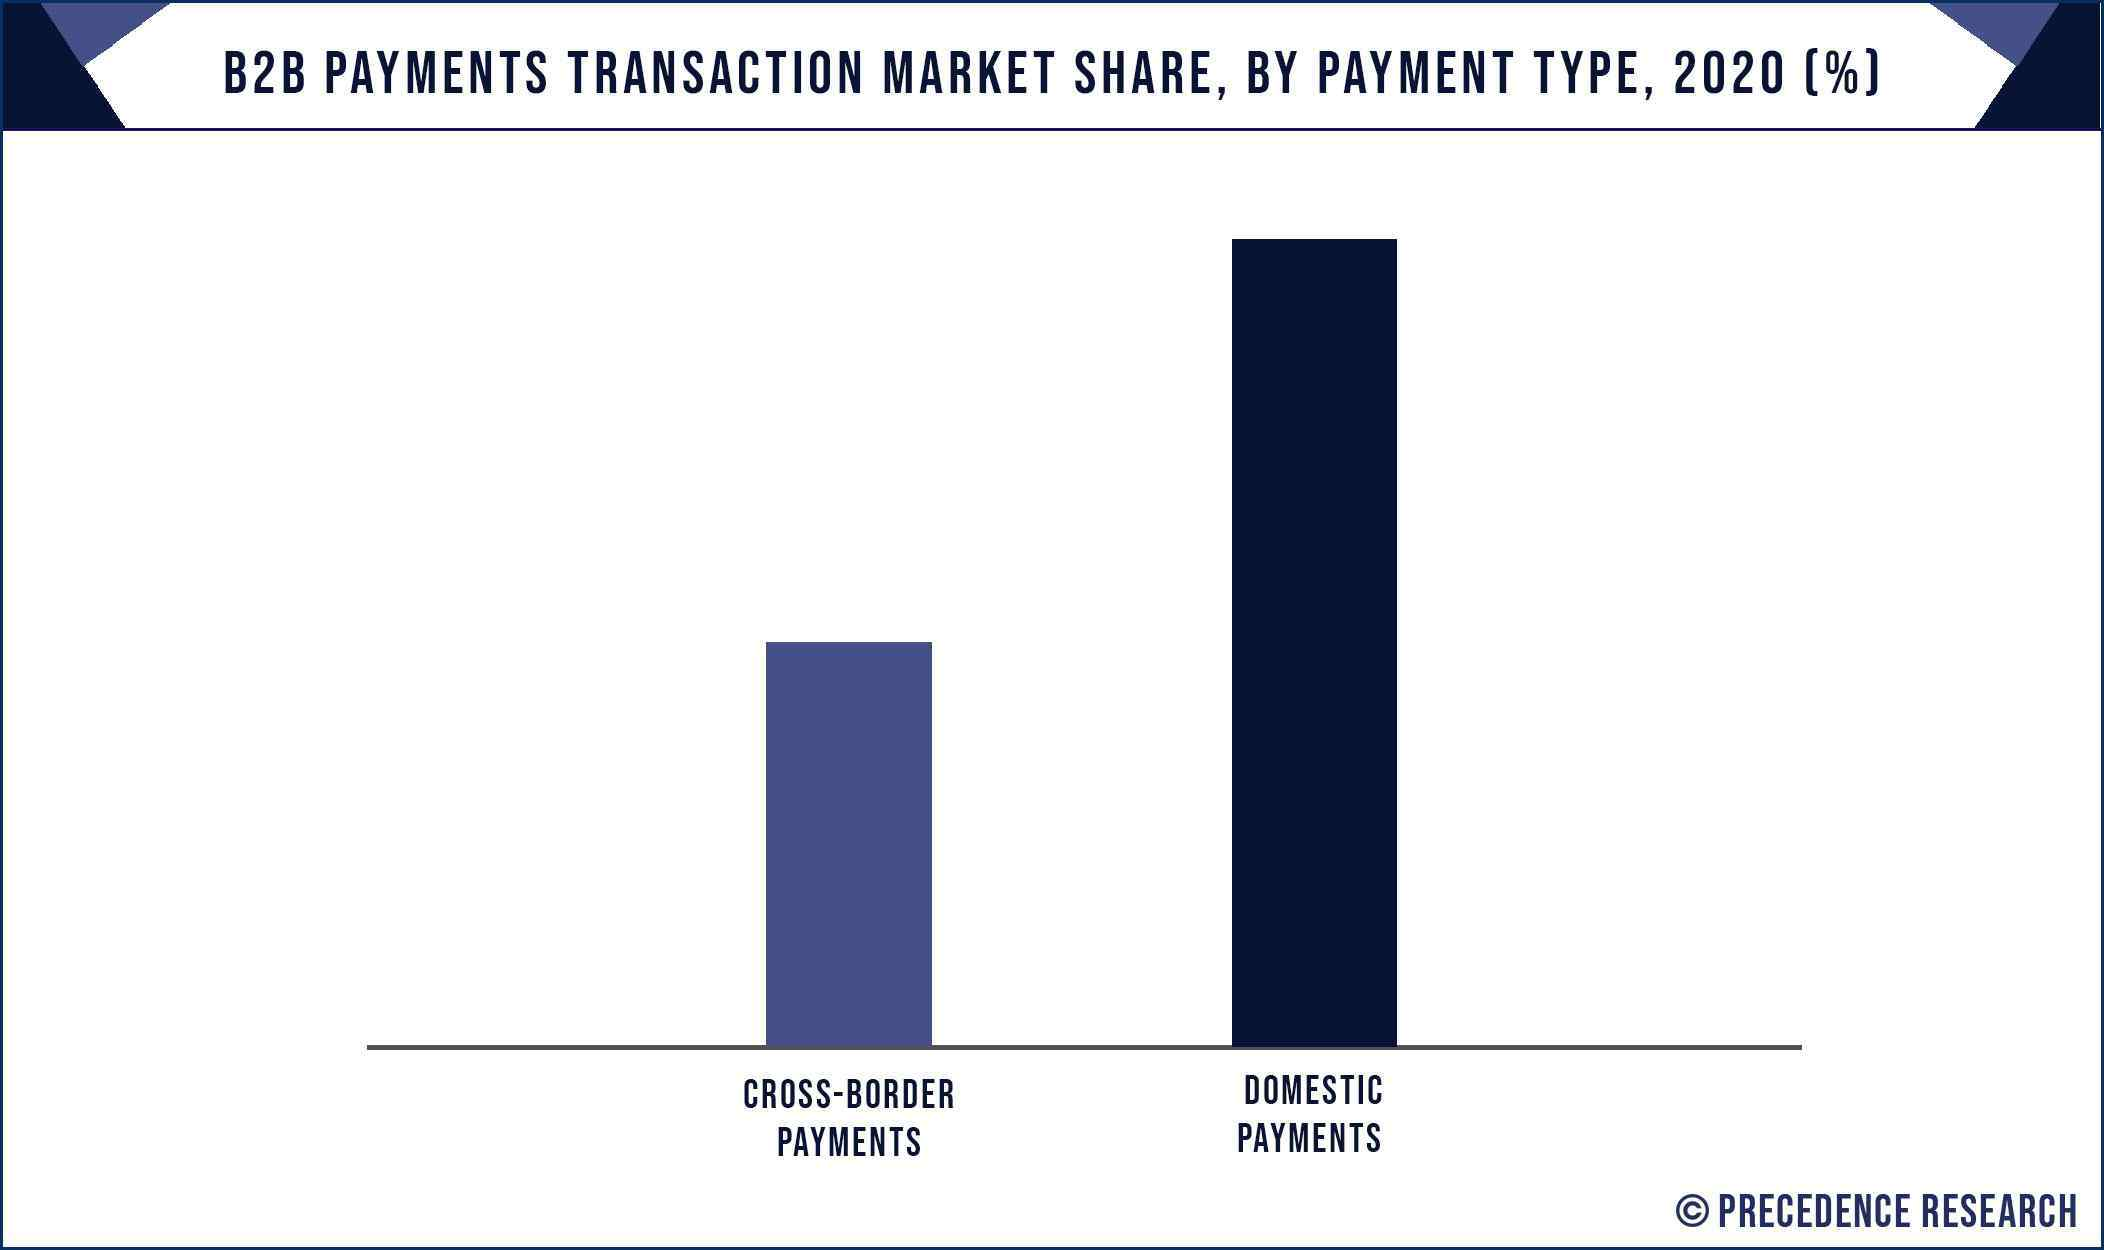 B2B Payments Transaction Market Share, By Payment Type, 2020 (%)